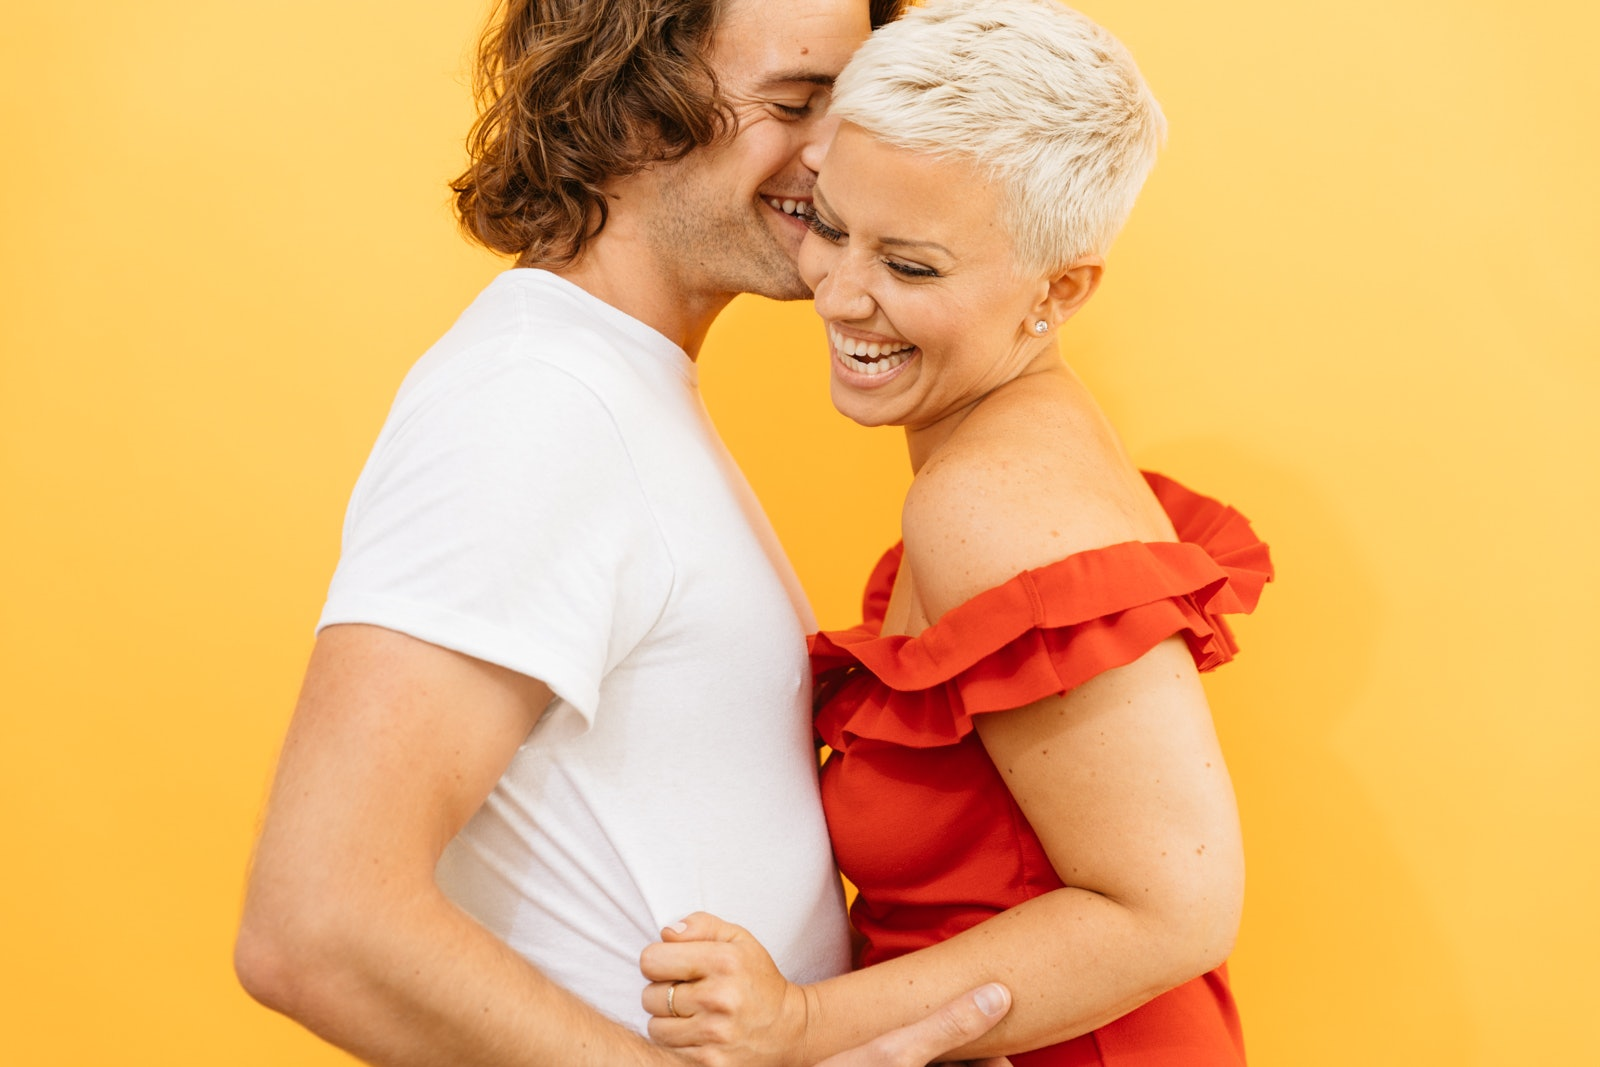 Should you stay married if you love someone else